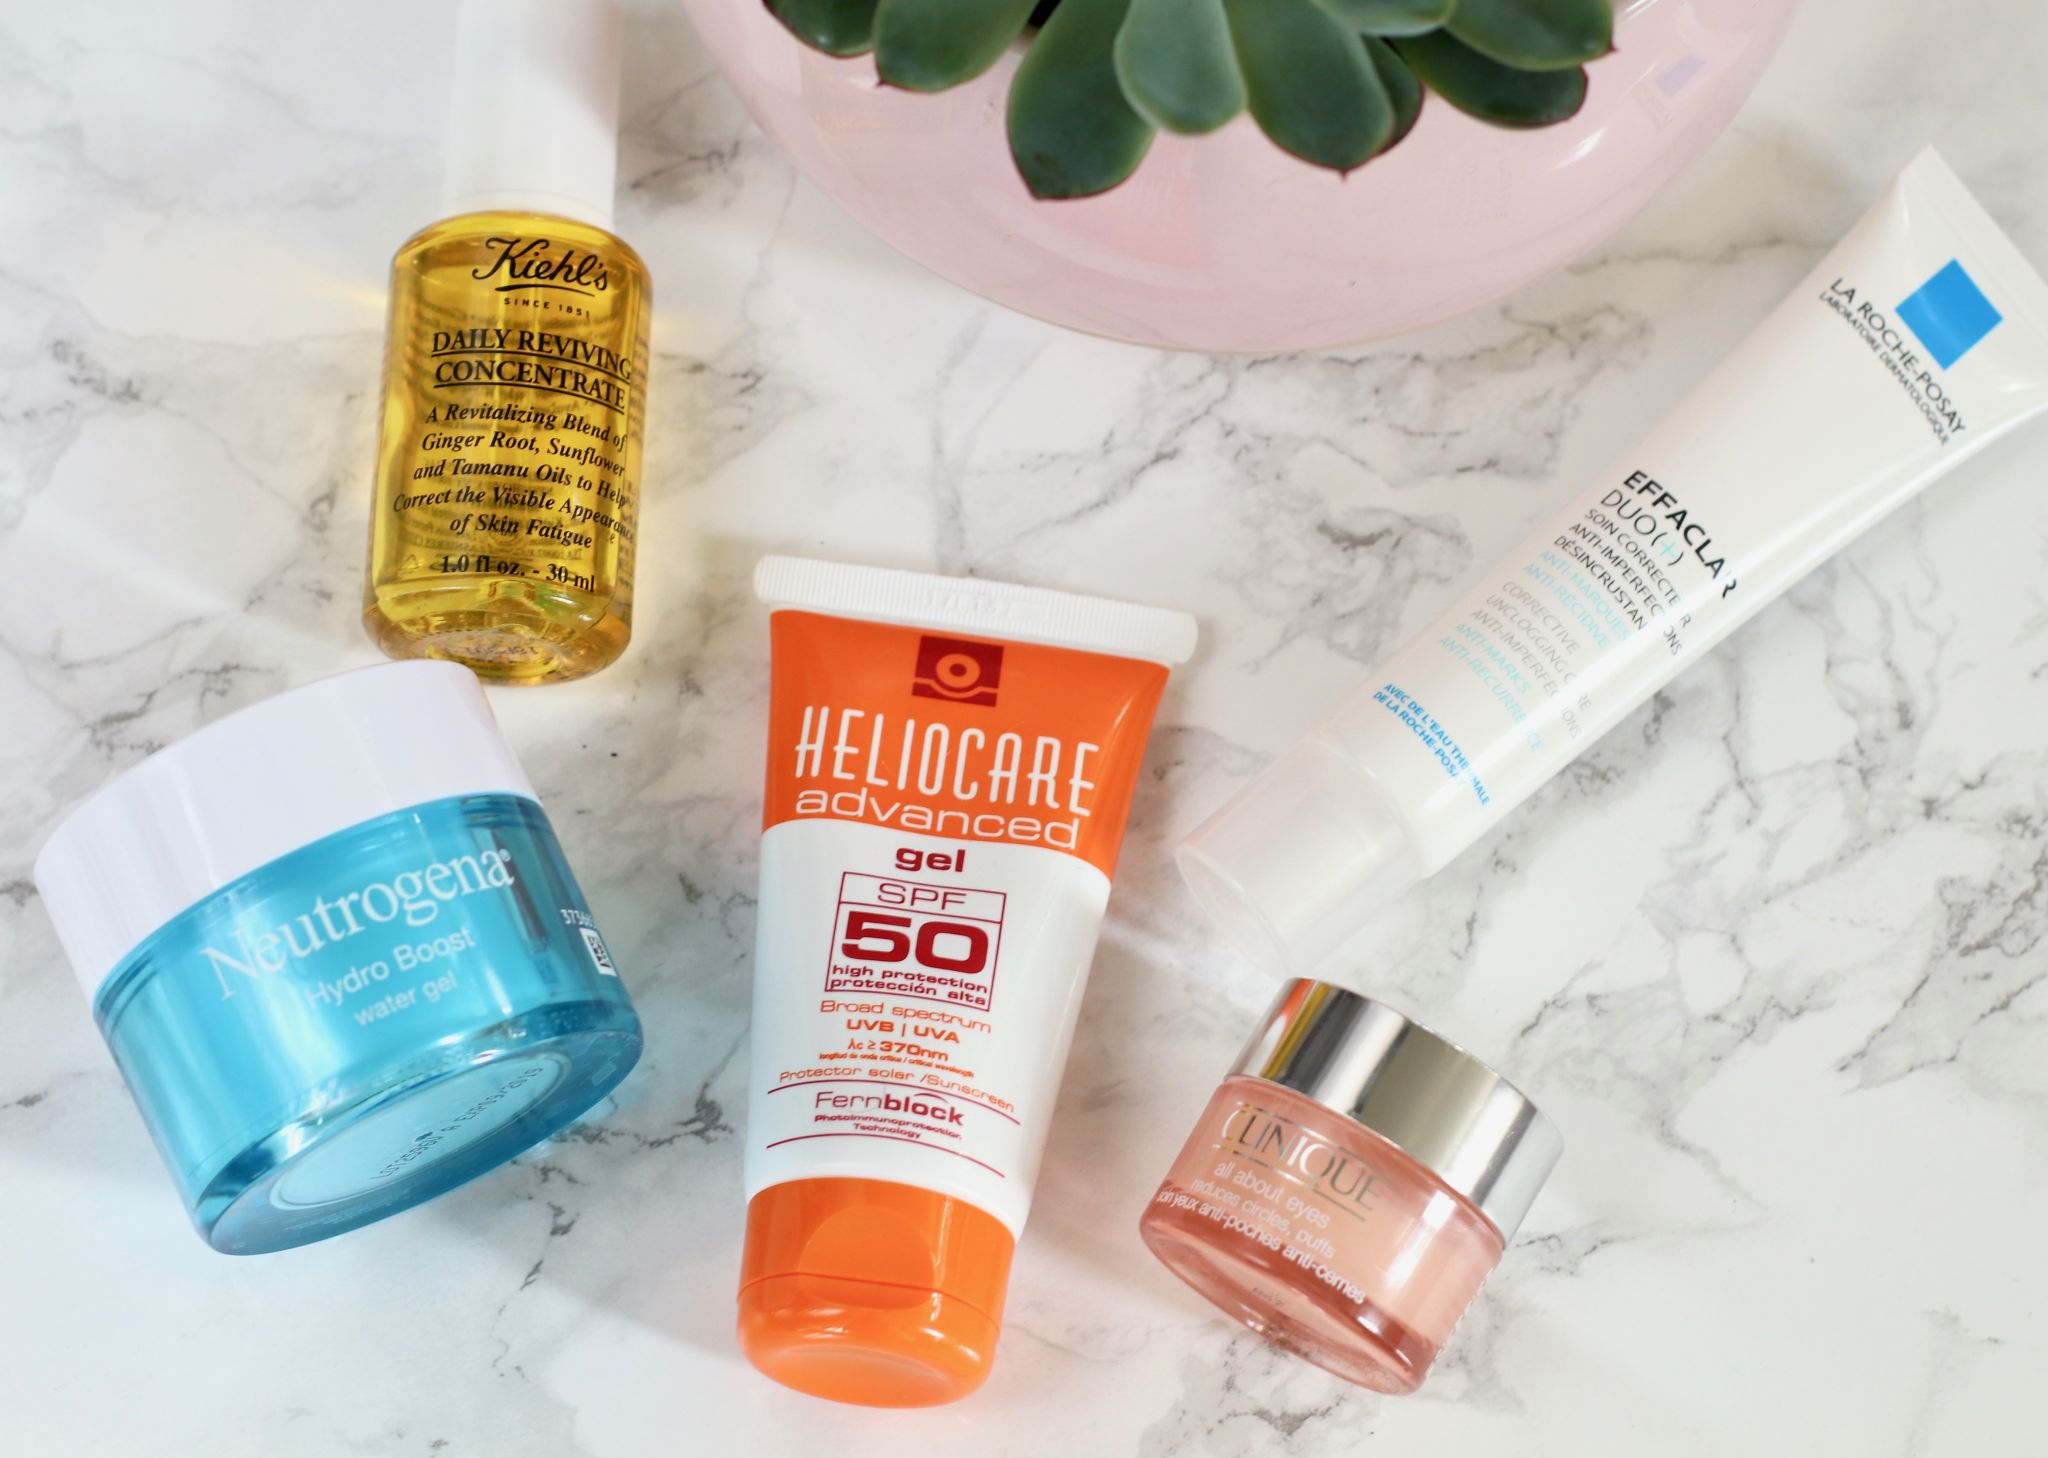 Morning skincare routine kiehls daily reviving concentrate neutrogena hydro boost water gel la roche-posey effaclar duo Heliocare spf 50 clinque all about eyes